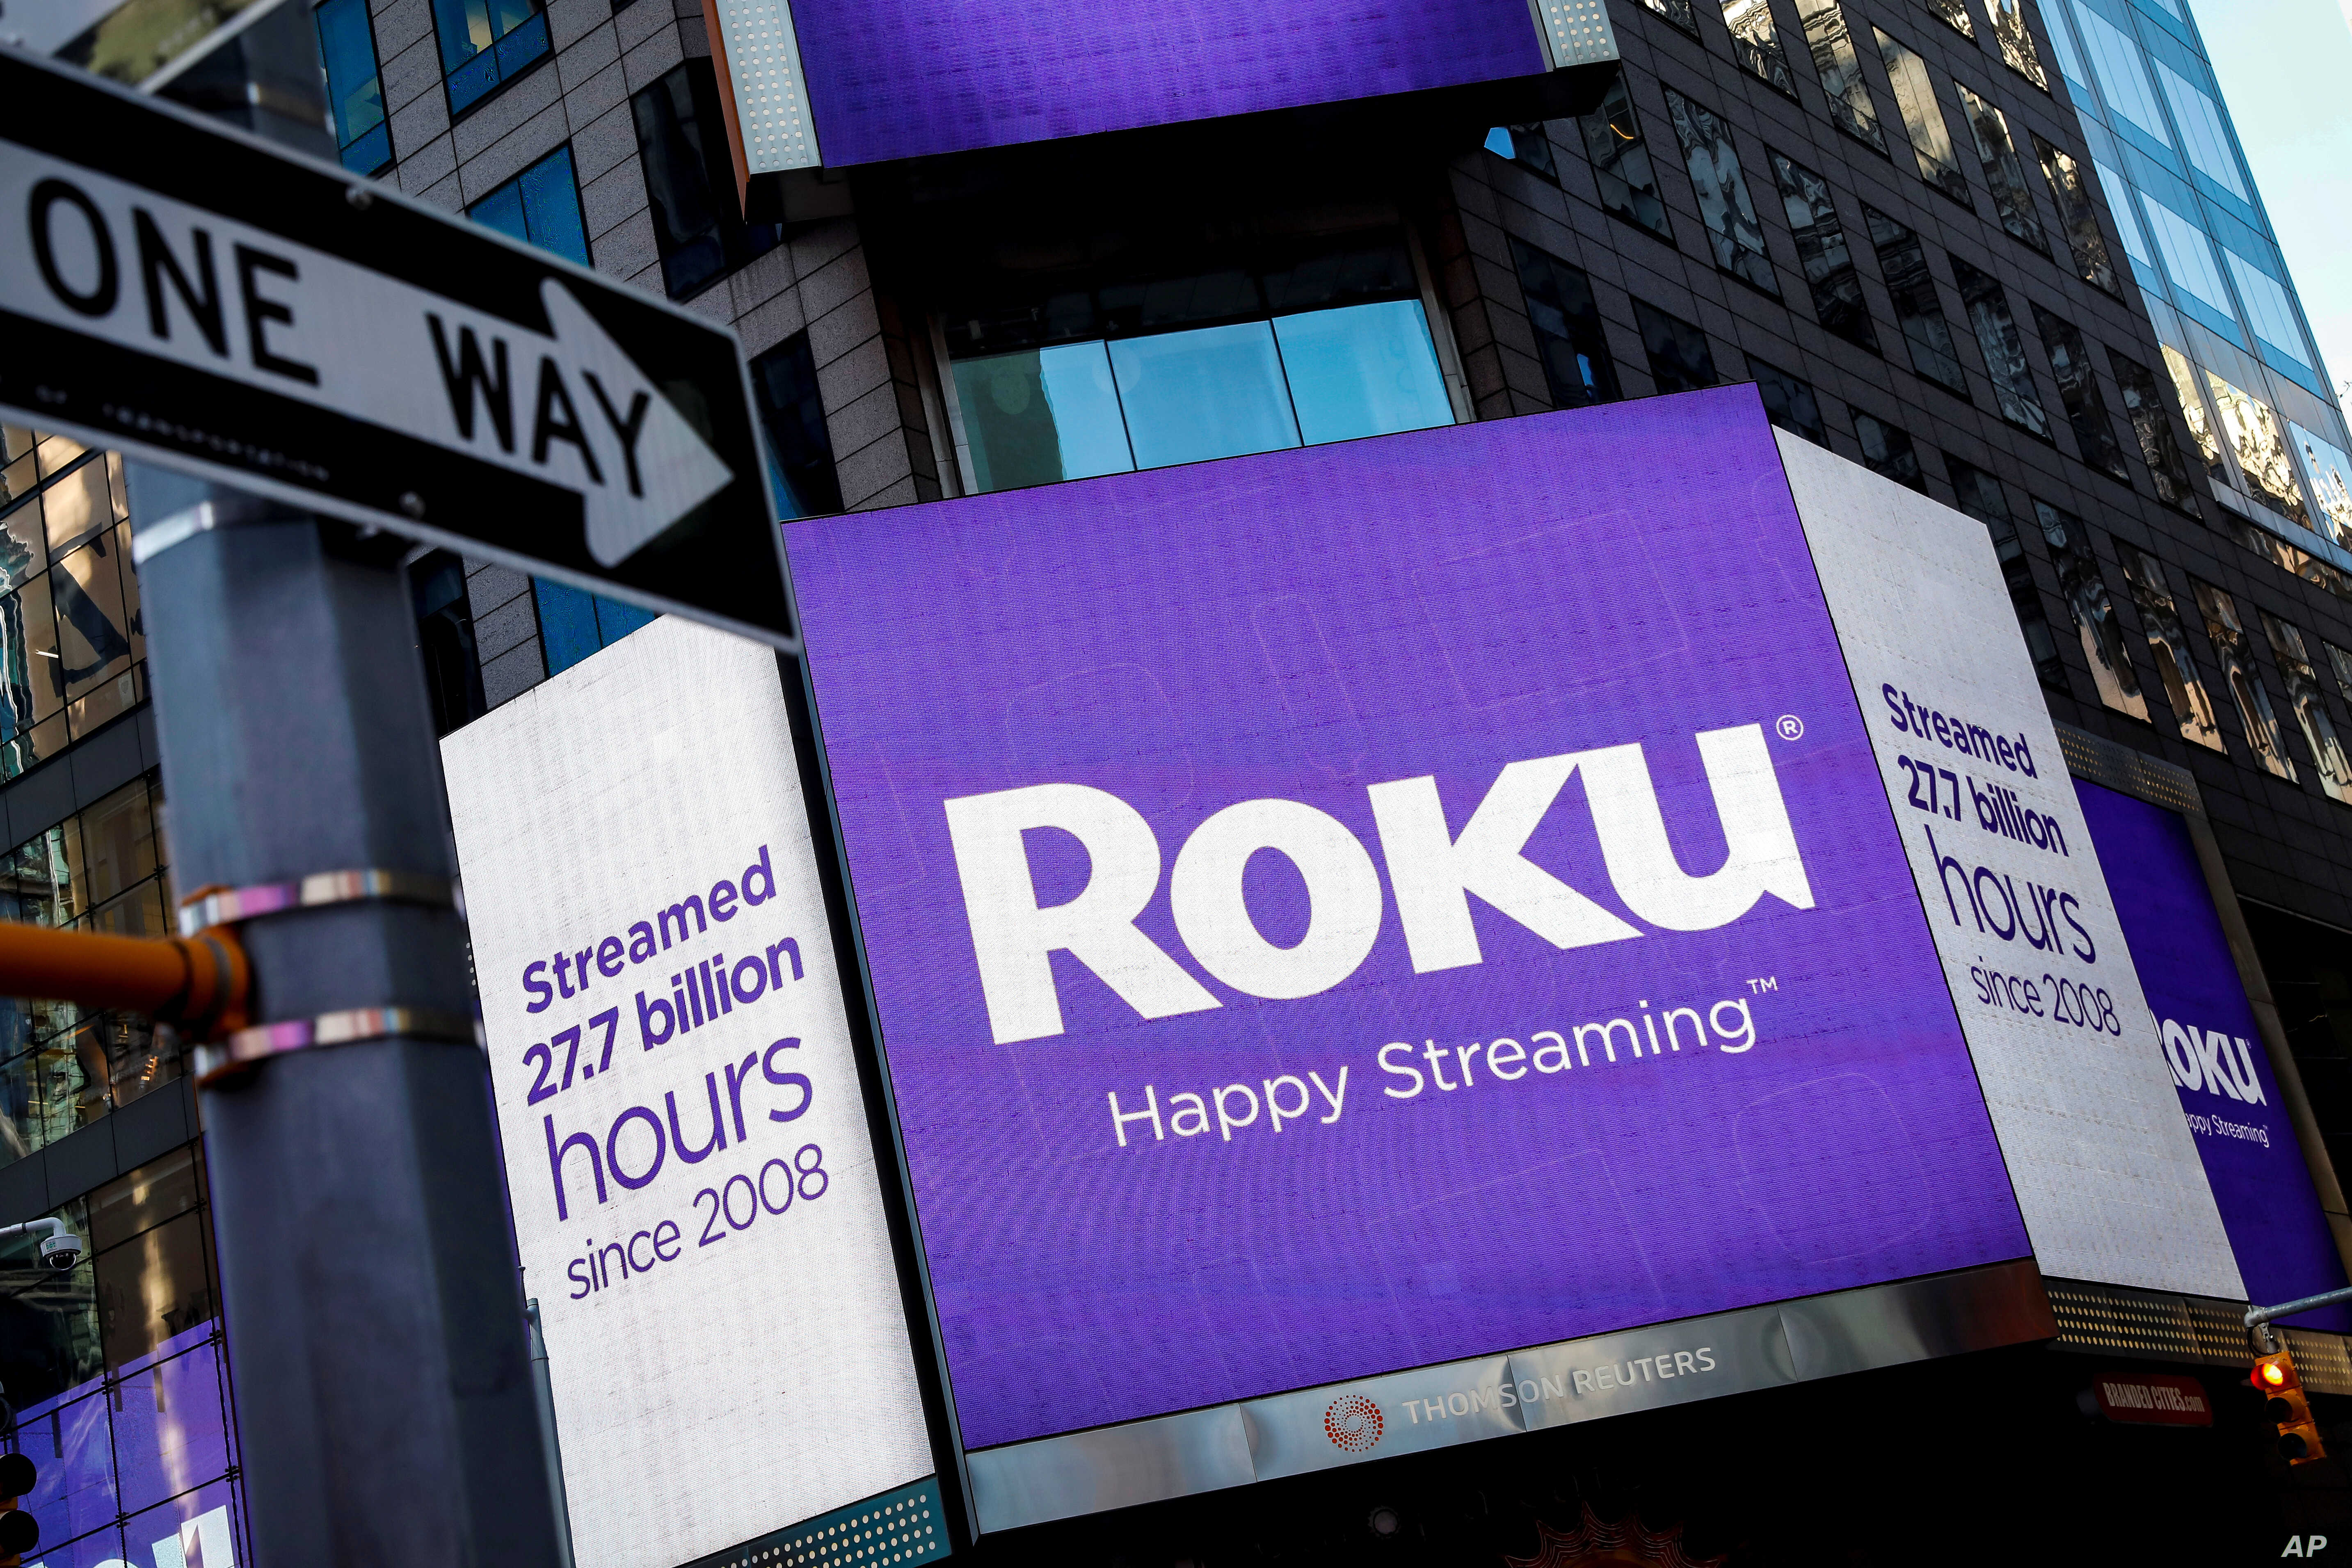 FILE PHOTO A video sign displays the logo for Roku Inc, a Fox-backed video streaming firm, in Times Square after the company's IPO at the Nasdaq Market in New York, U.S., Sept. 28, 2017.